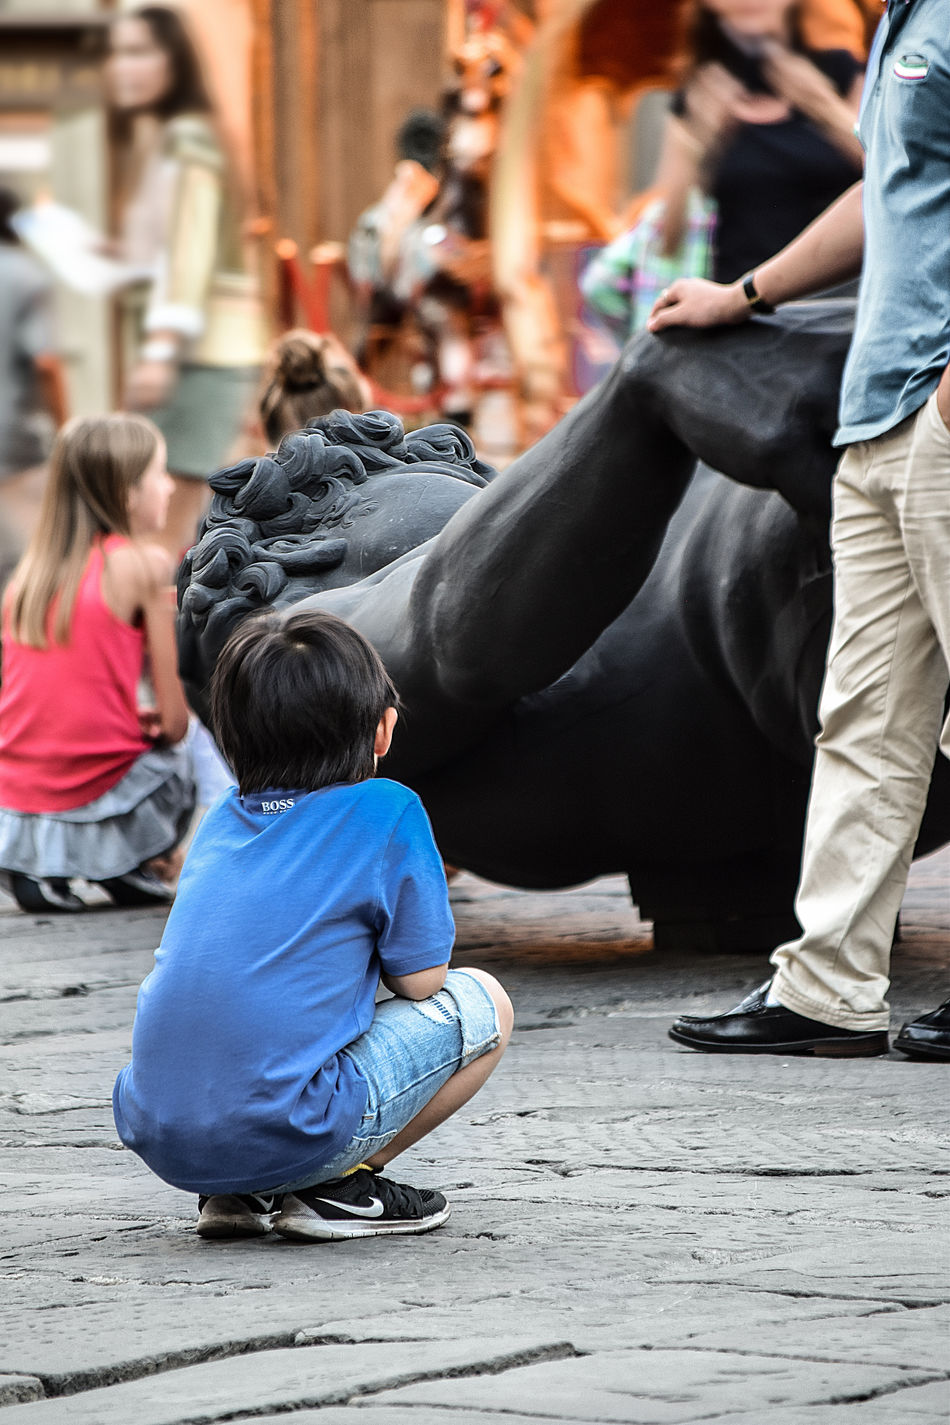 Bambini Che Giocano Black David For Nizza Black Marble Casual Clothing Children David For Nizza David Nero Day Florence Italy Focus On Foreground Leisure Activity Lifestyles Marble Men Outdoors Piazza Della Repubblica Firenze Selective Focus Sitting Square Tuscany Italy